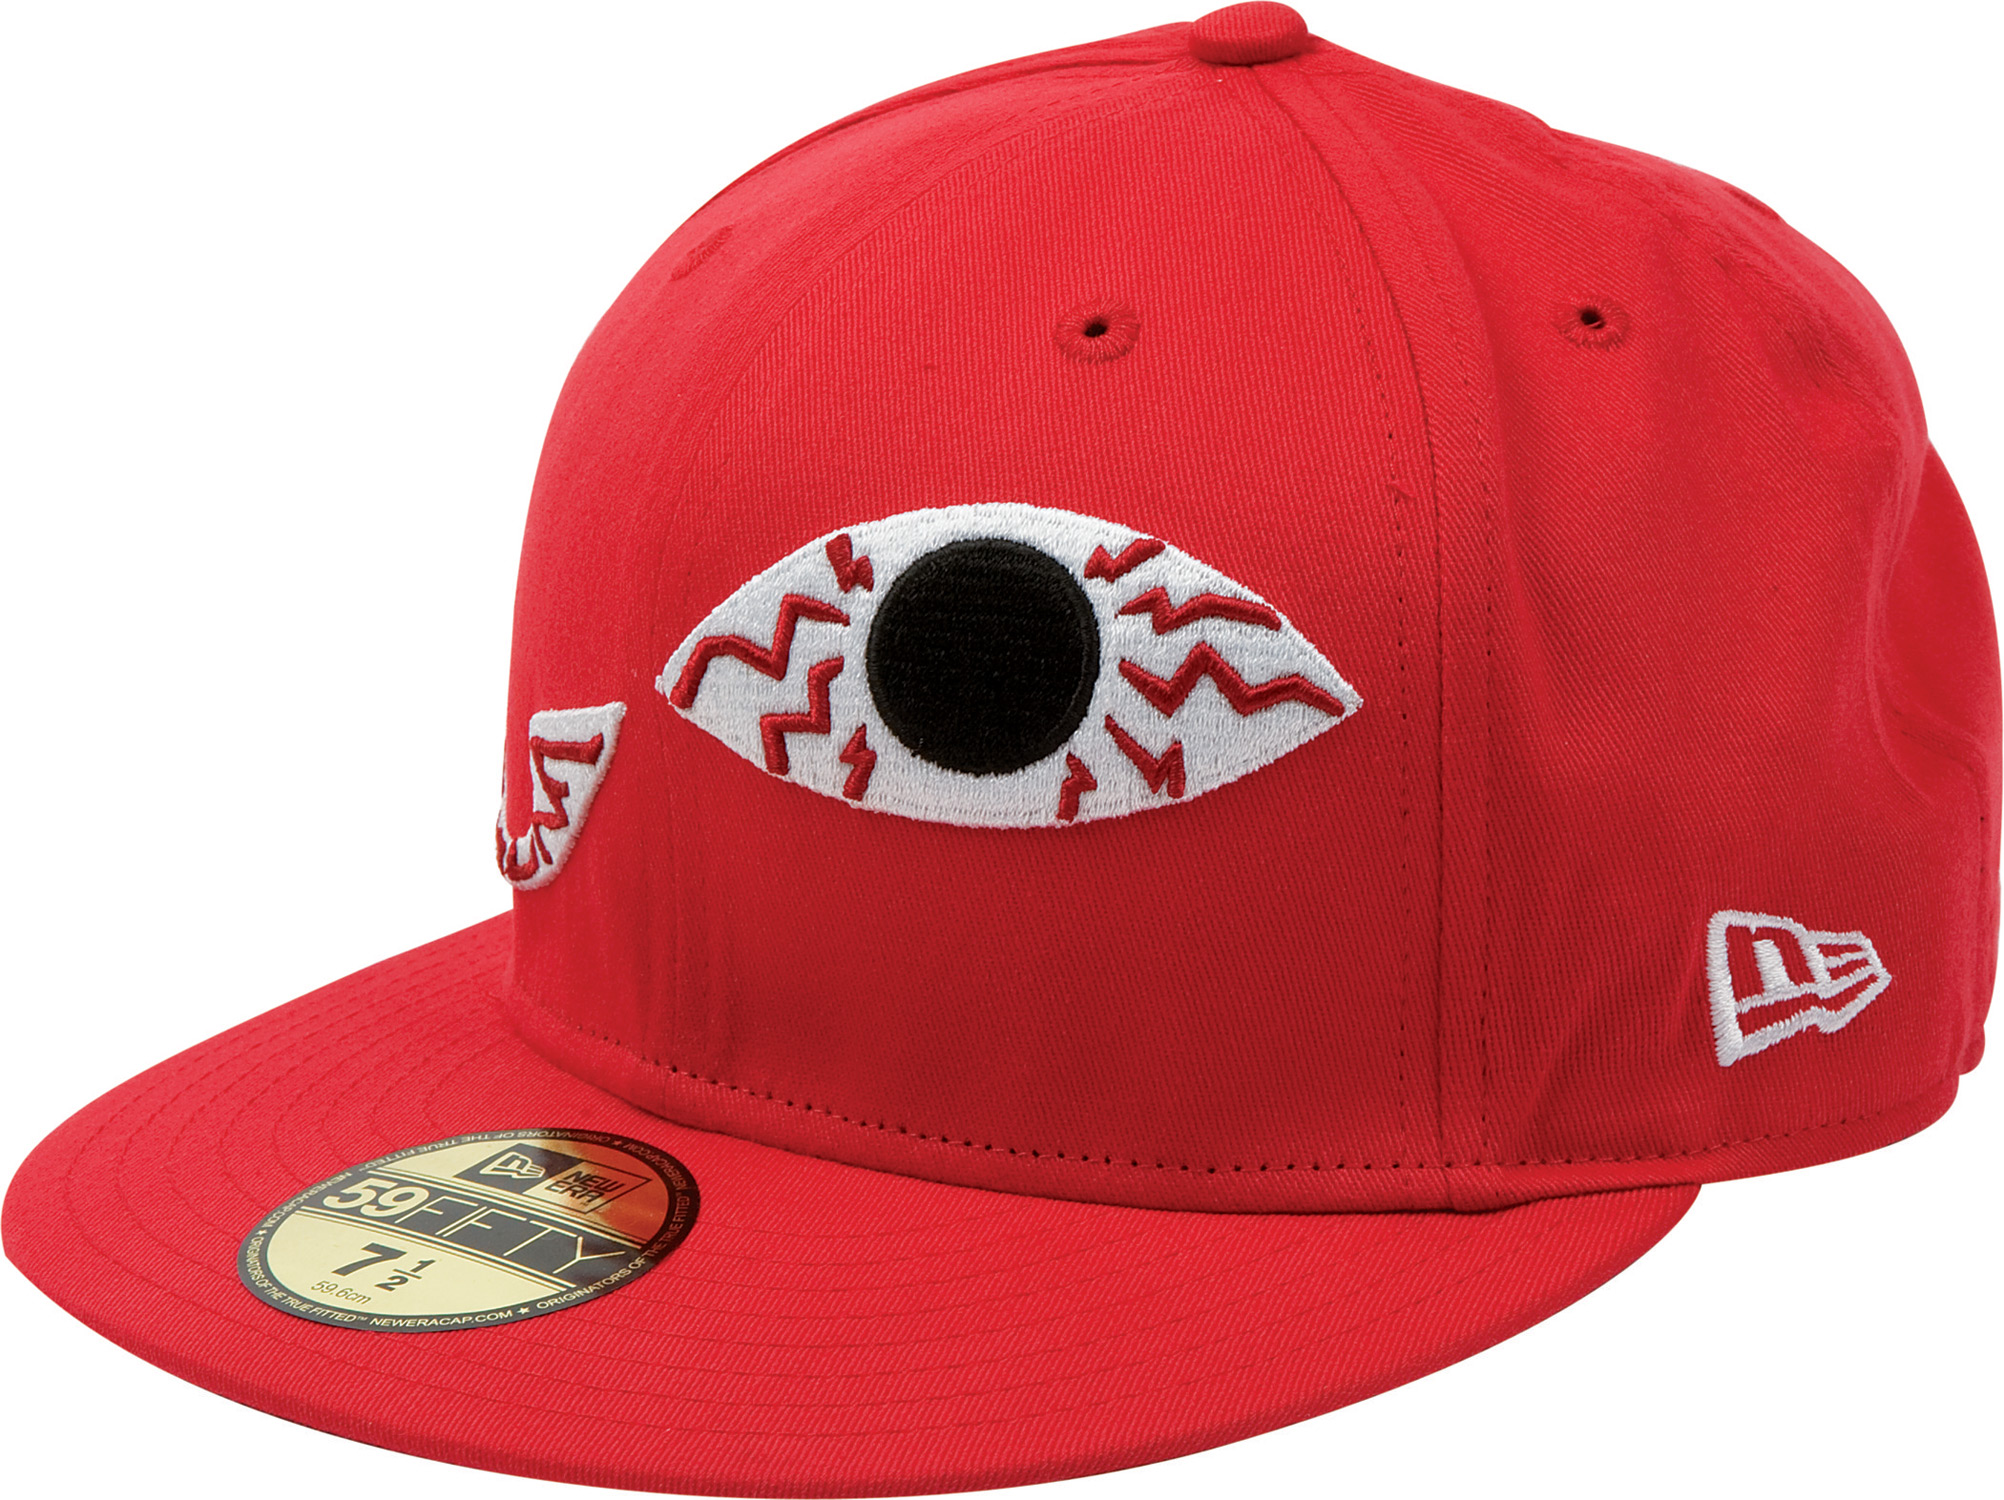 Forum Seeker New Era Cap Red - $12.20